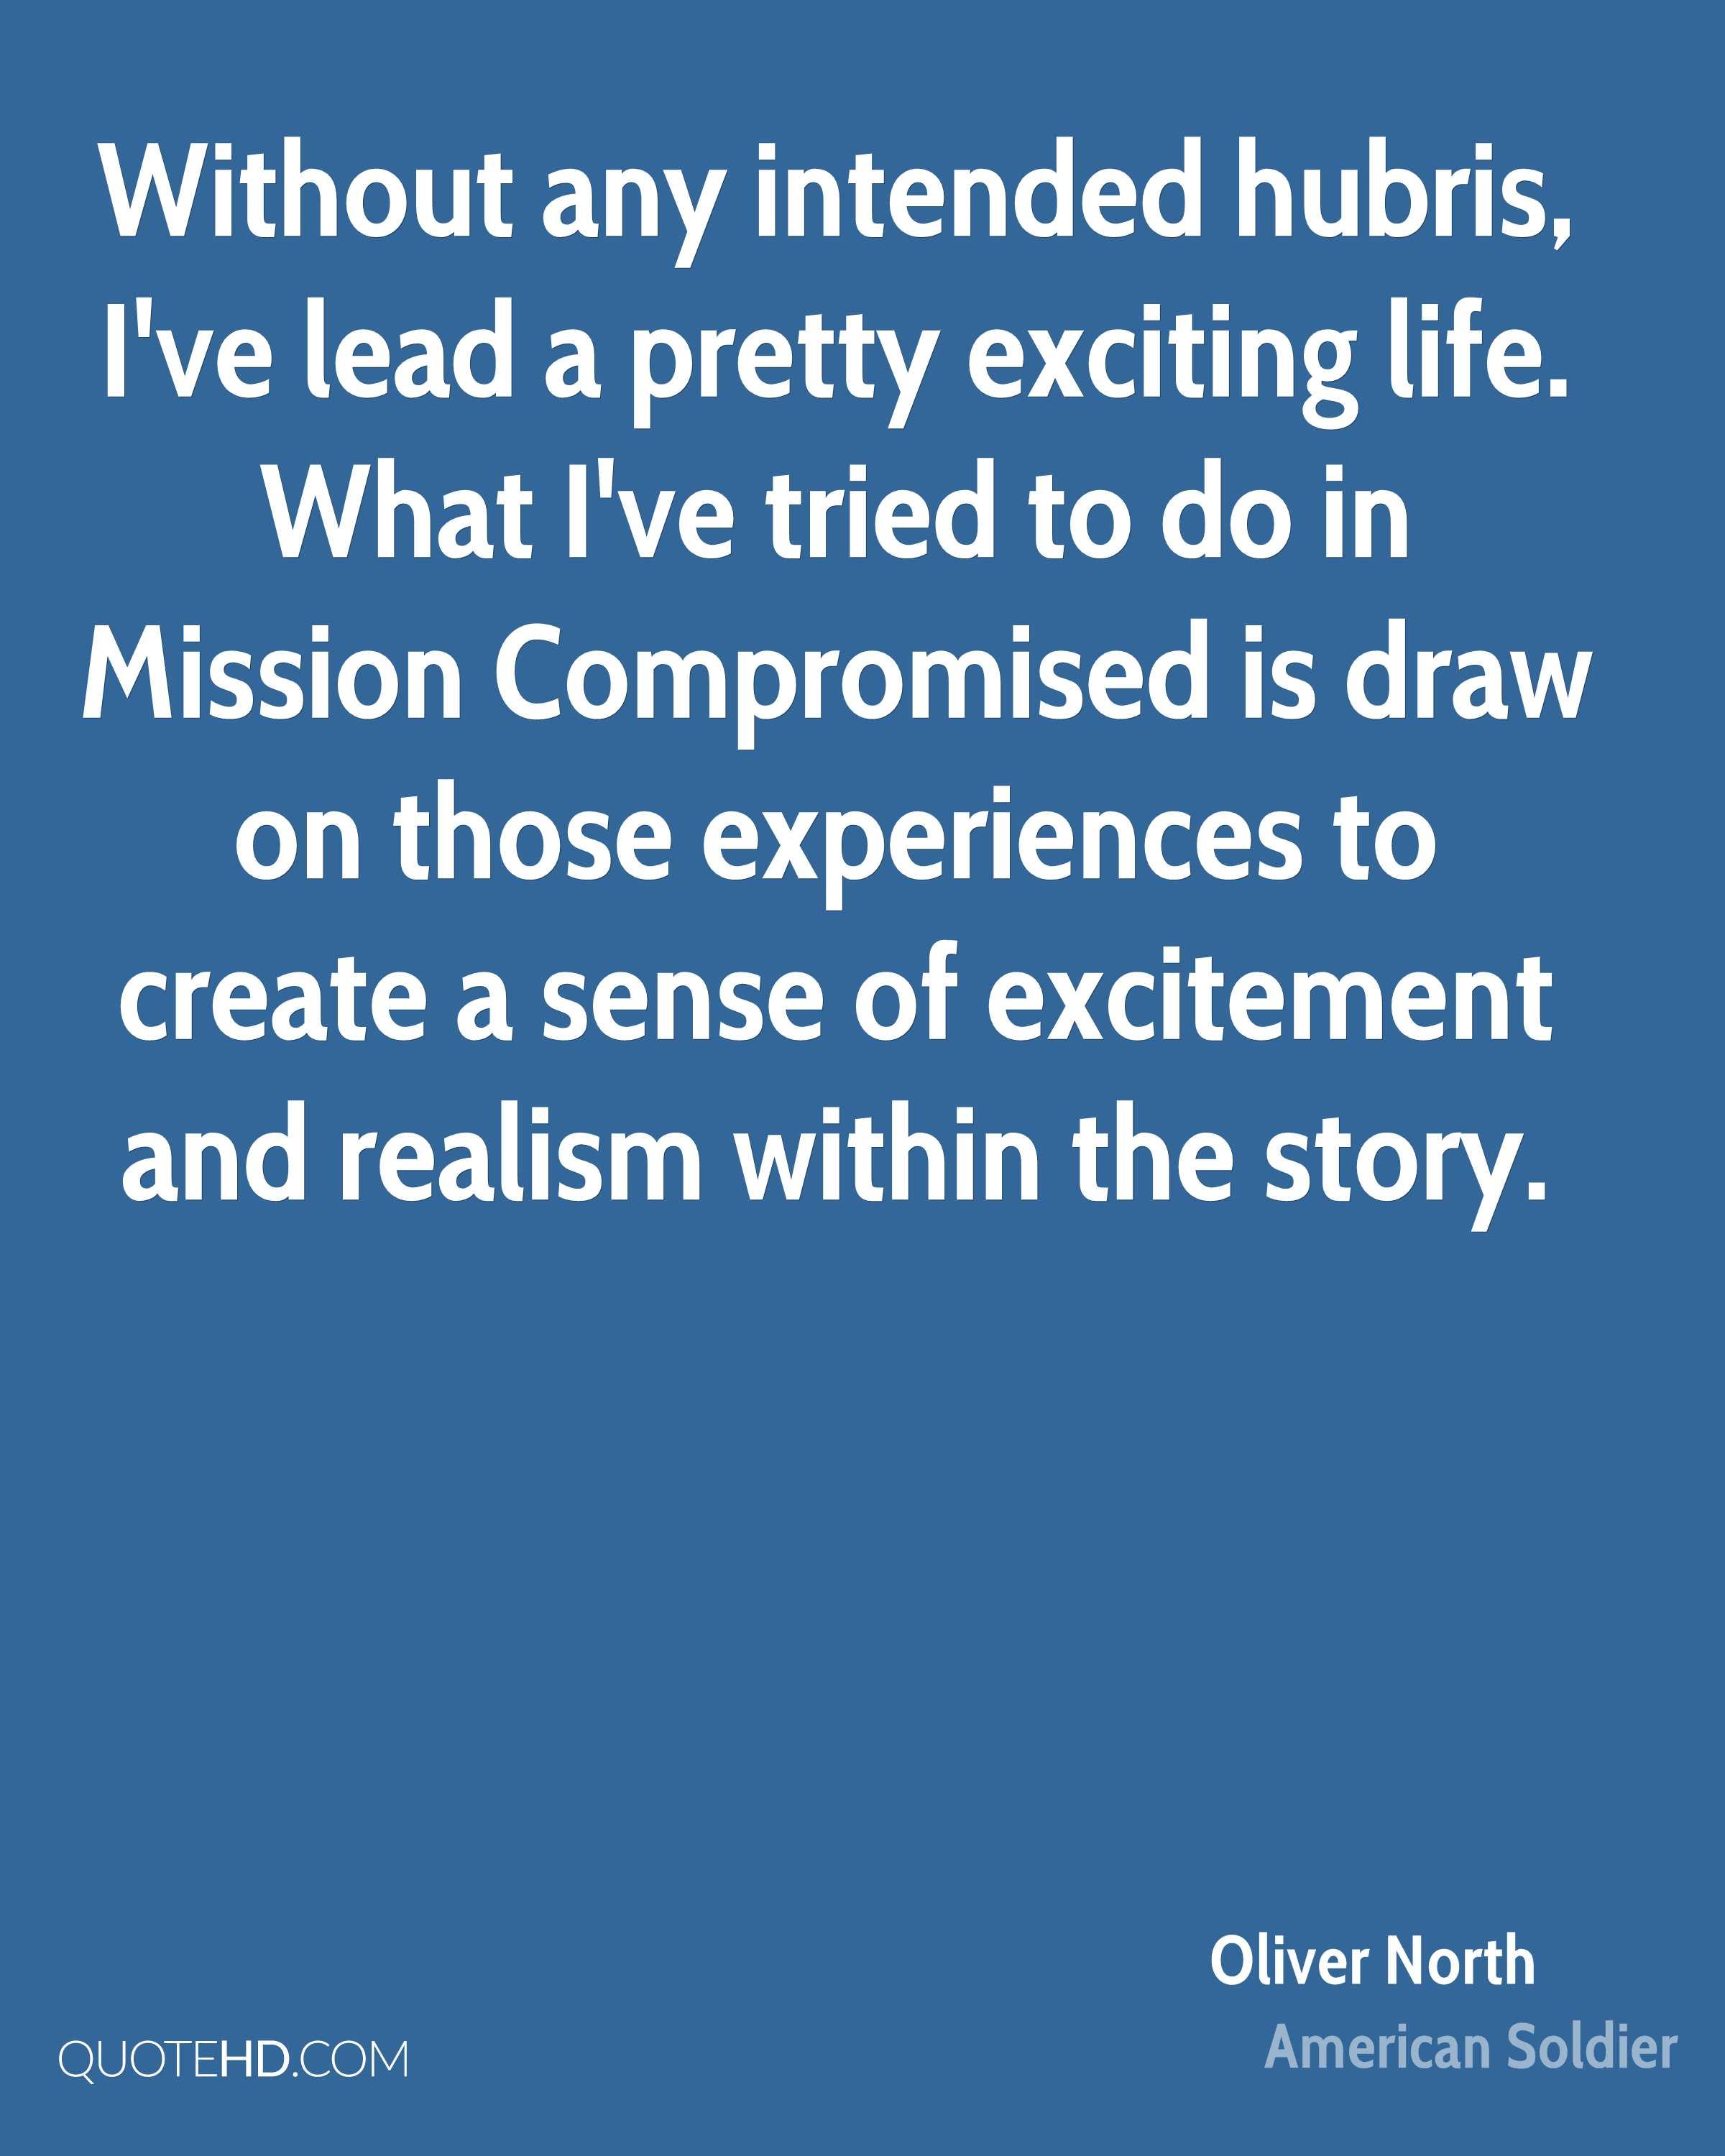 Without any intended hubris, I've lead a pretty exciting life. What I've tried to do in Mission Compromised is draw on those experiences to create a sense of excitement and realism within the story.